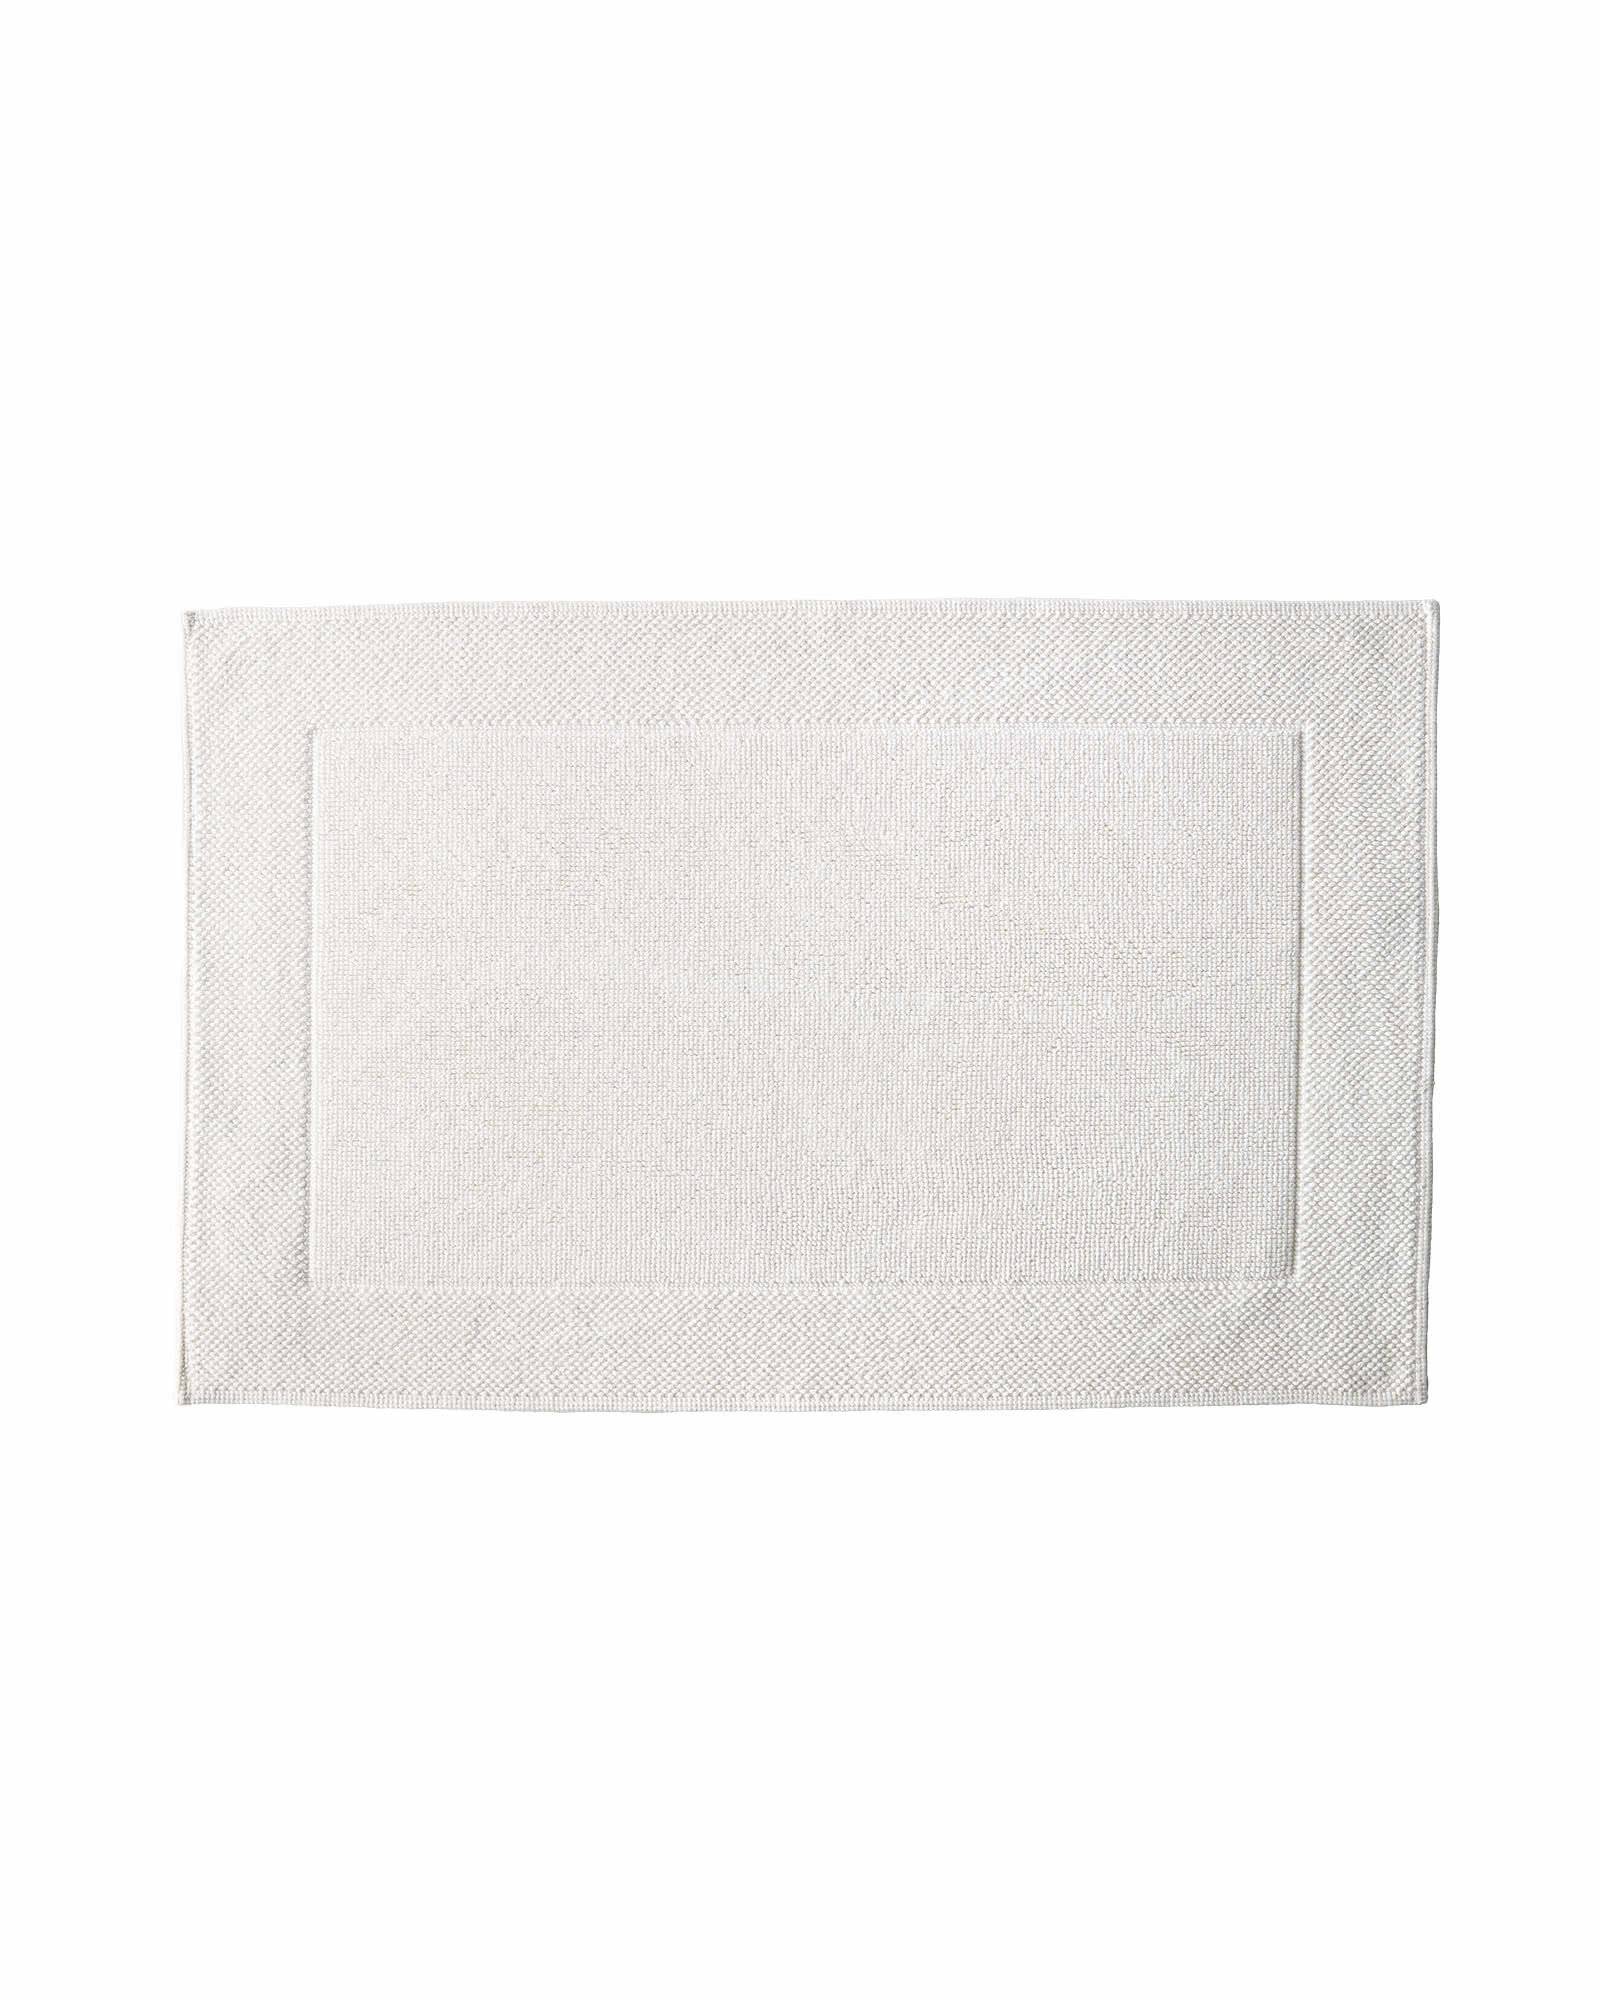 Textured Cotton Bath Mat,